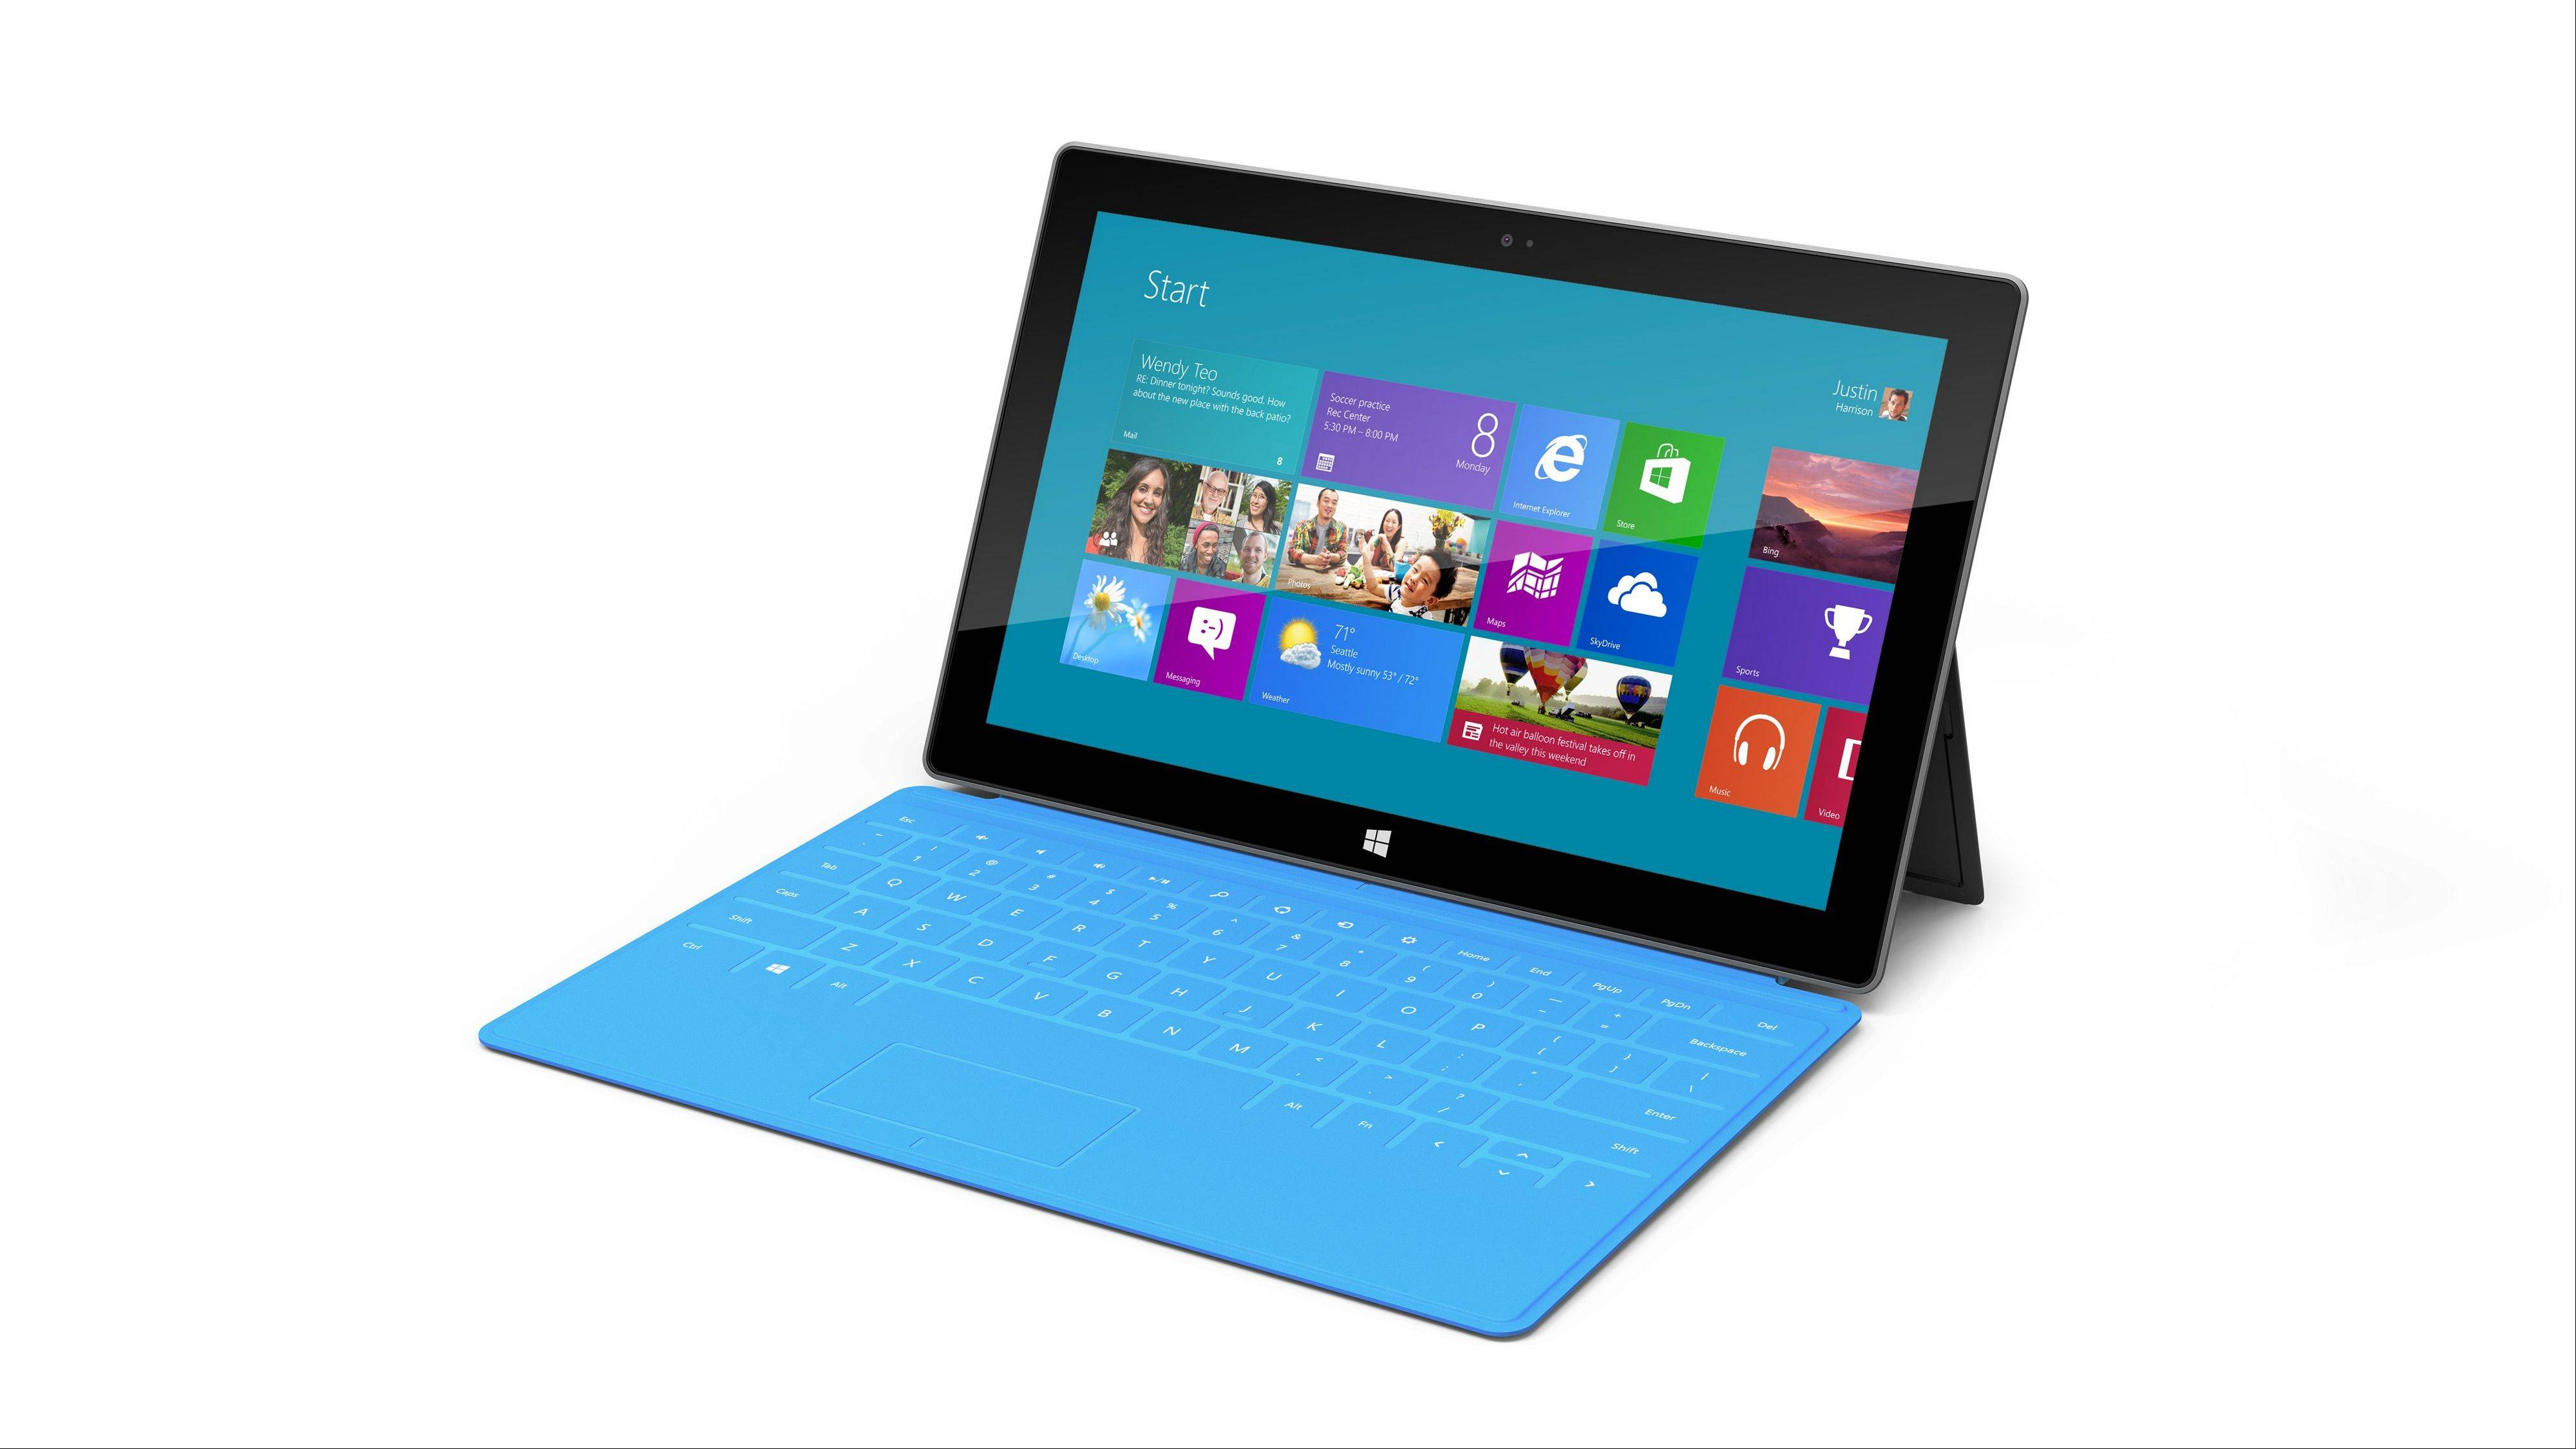 Microsoft Corp., the world�s largest software maker, said its Surface tablet computer running the new Windows 8 Pro software will be available Feb. 9, the first versions of the machine powered by Intel Corp. chips.